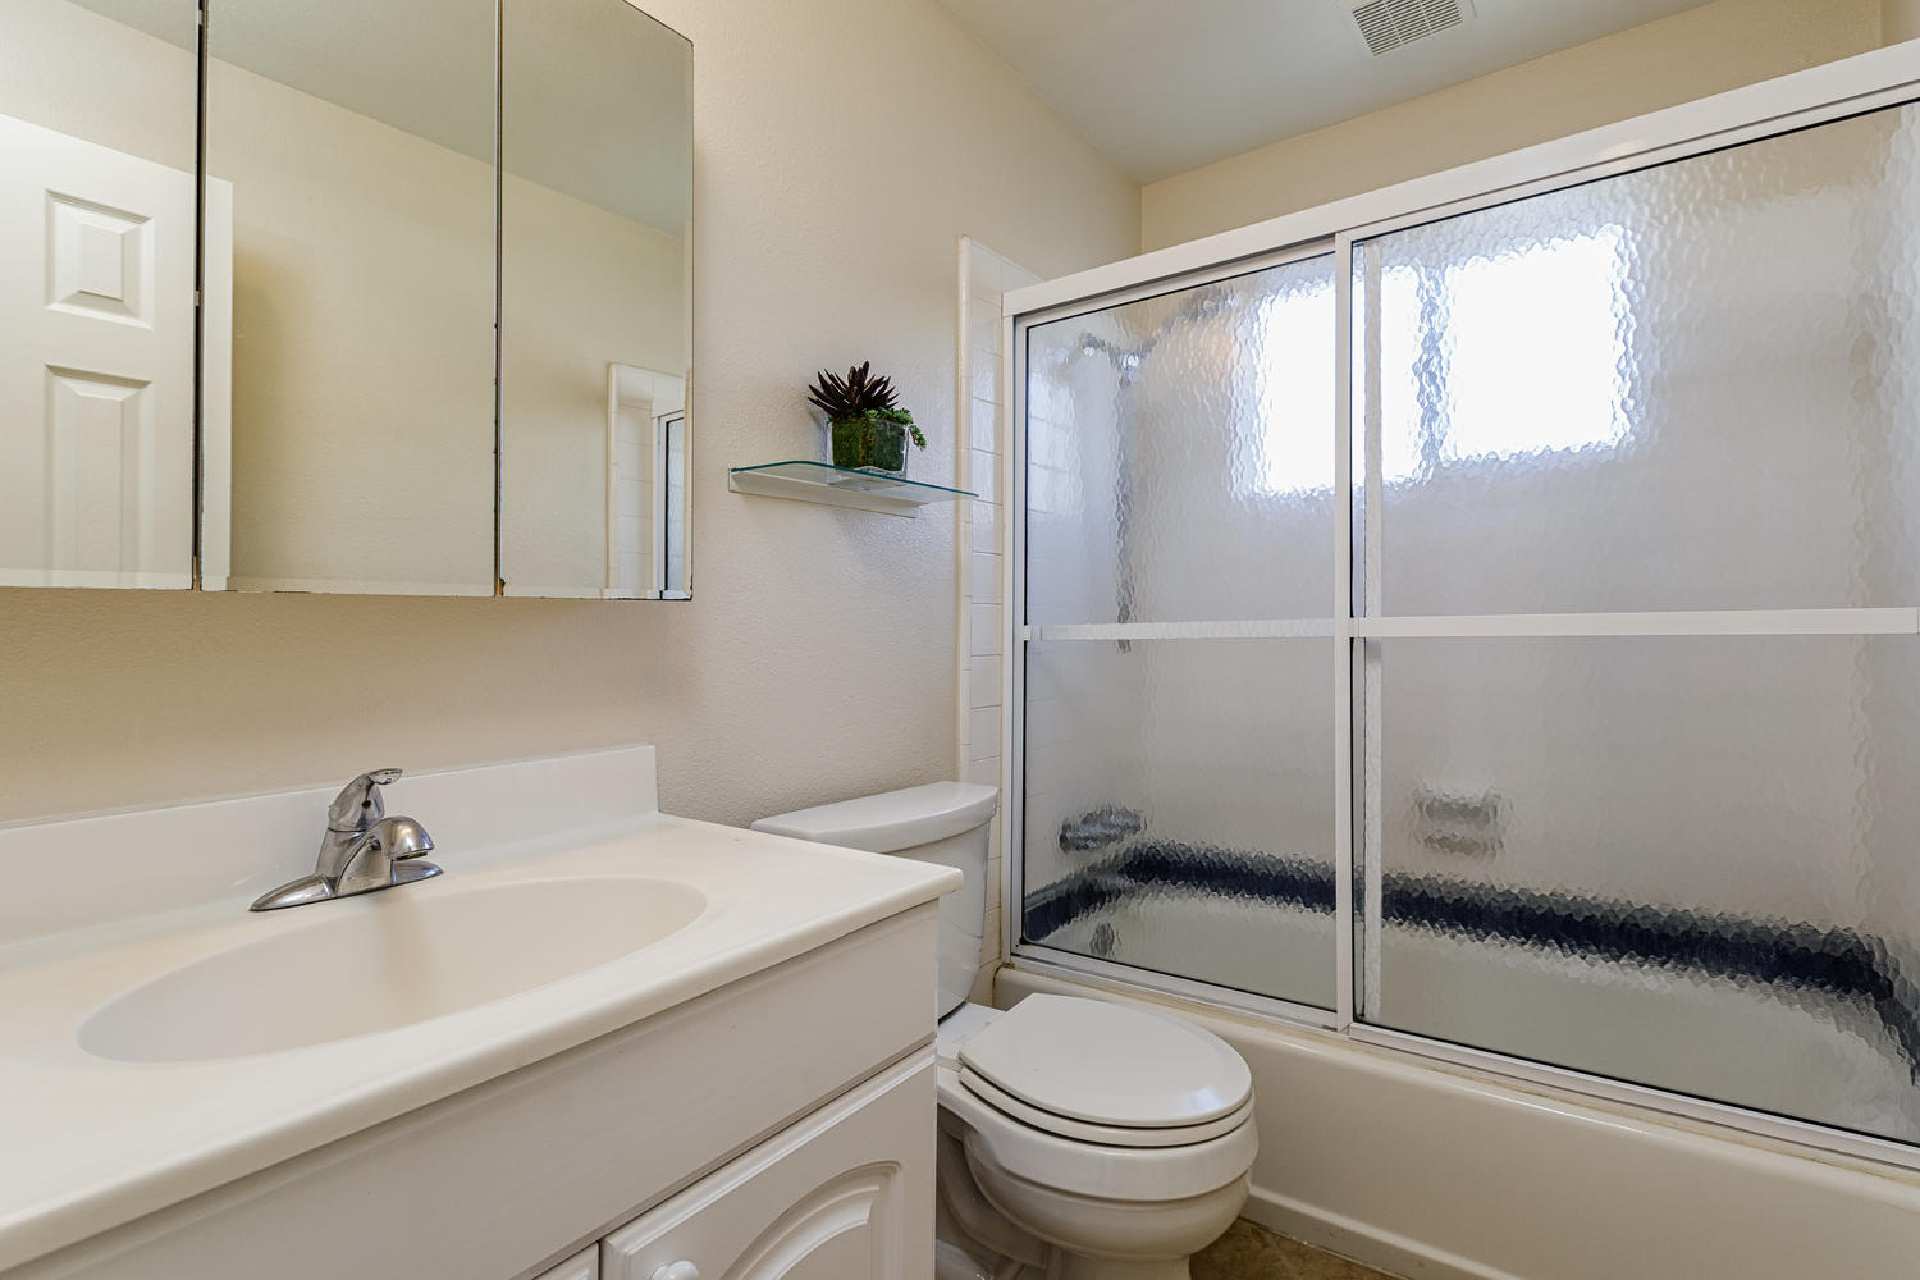 https://www.addressrealestate.com/media/images/blogs/38/2/b_10-1408-ocean-dr-oxnard-ca-93035-mls-size-018-30-bathroom-1-1500x1000-72dpi.jpg